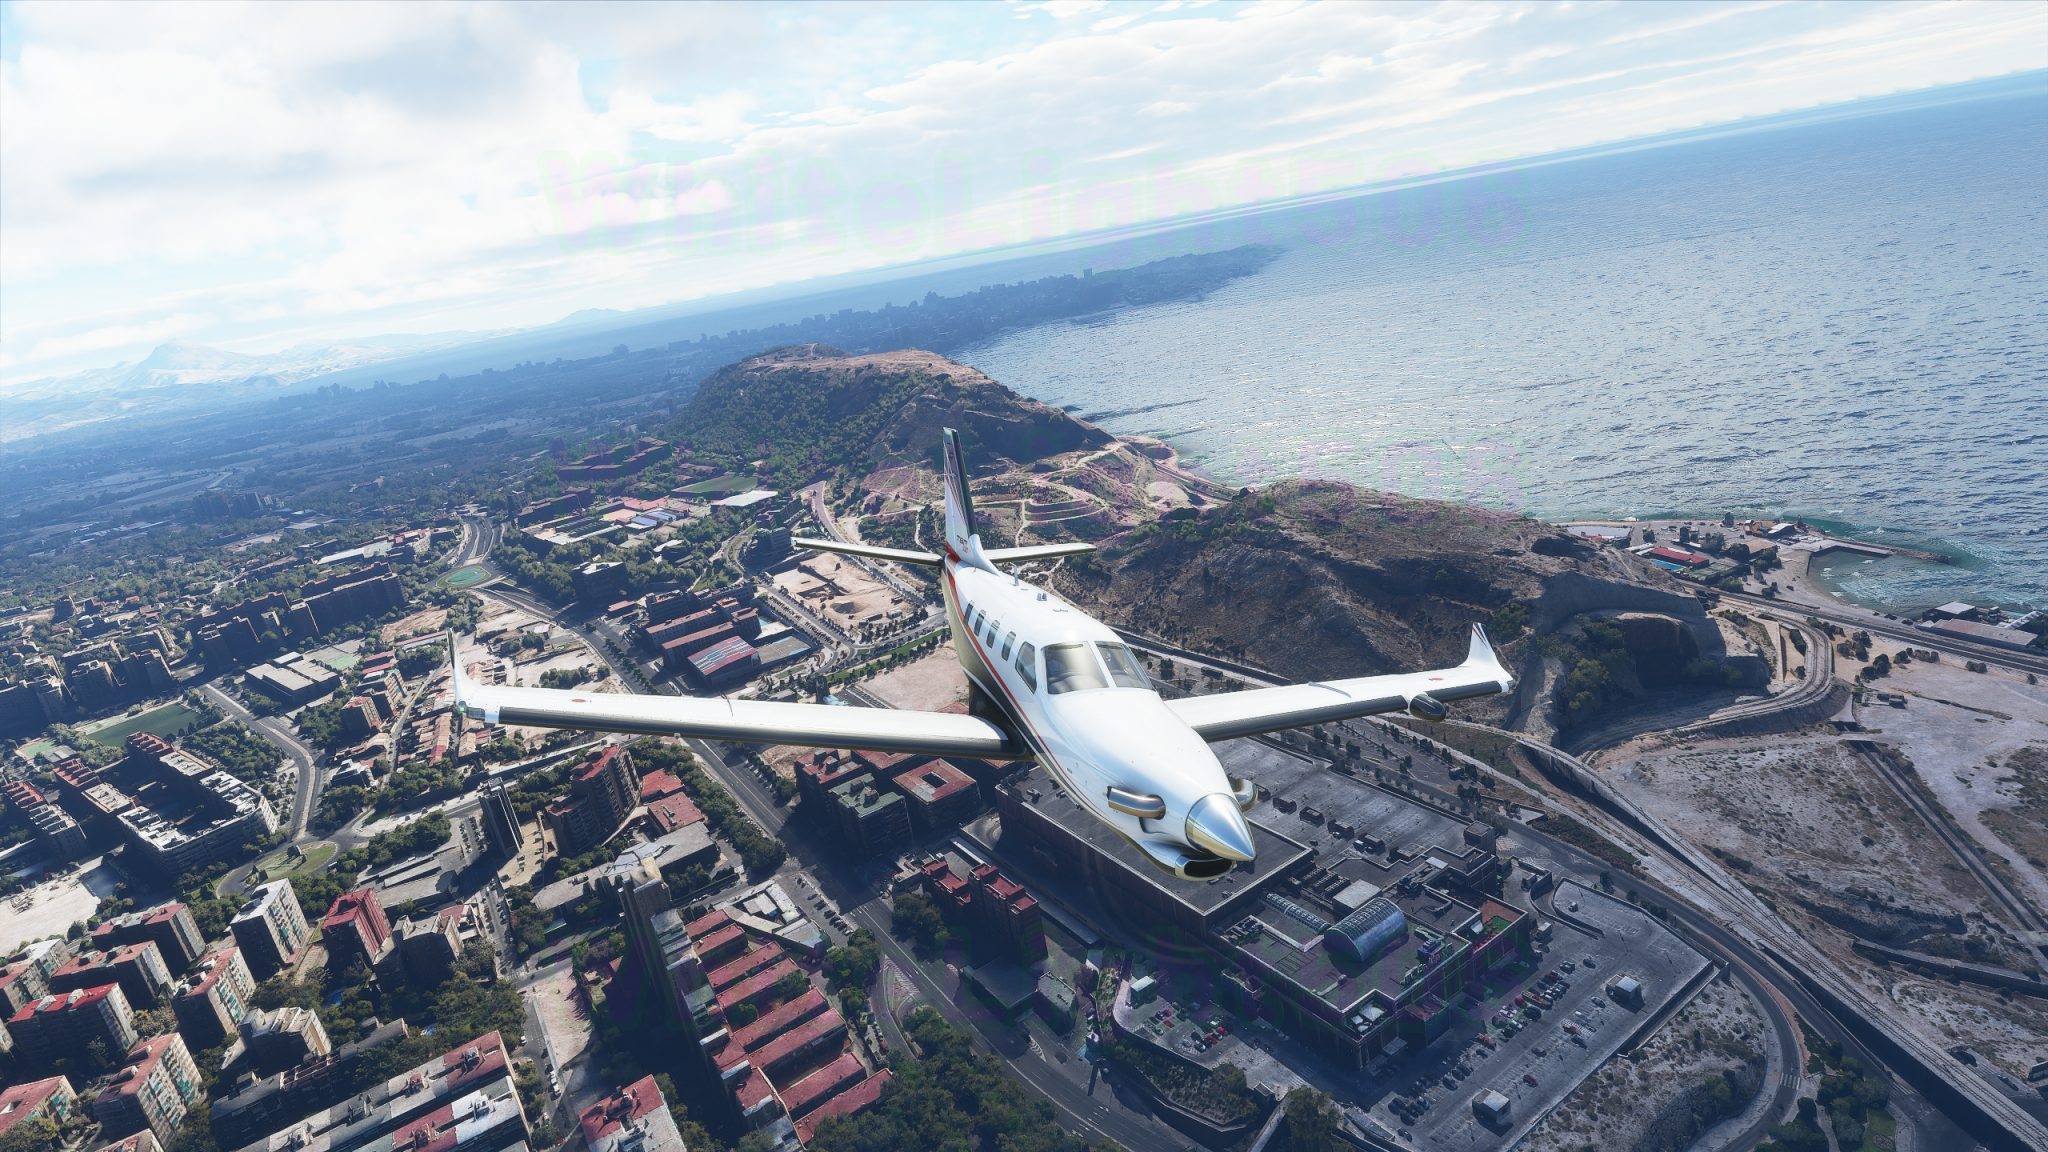 https://msgpwebsites.azureedge.net/fsi/wp-content/uploads/2020/06/Flightsim_140-2048x1152.jpg